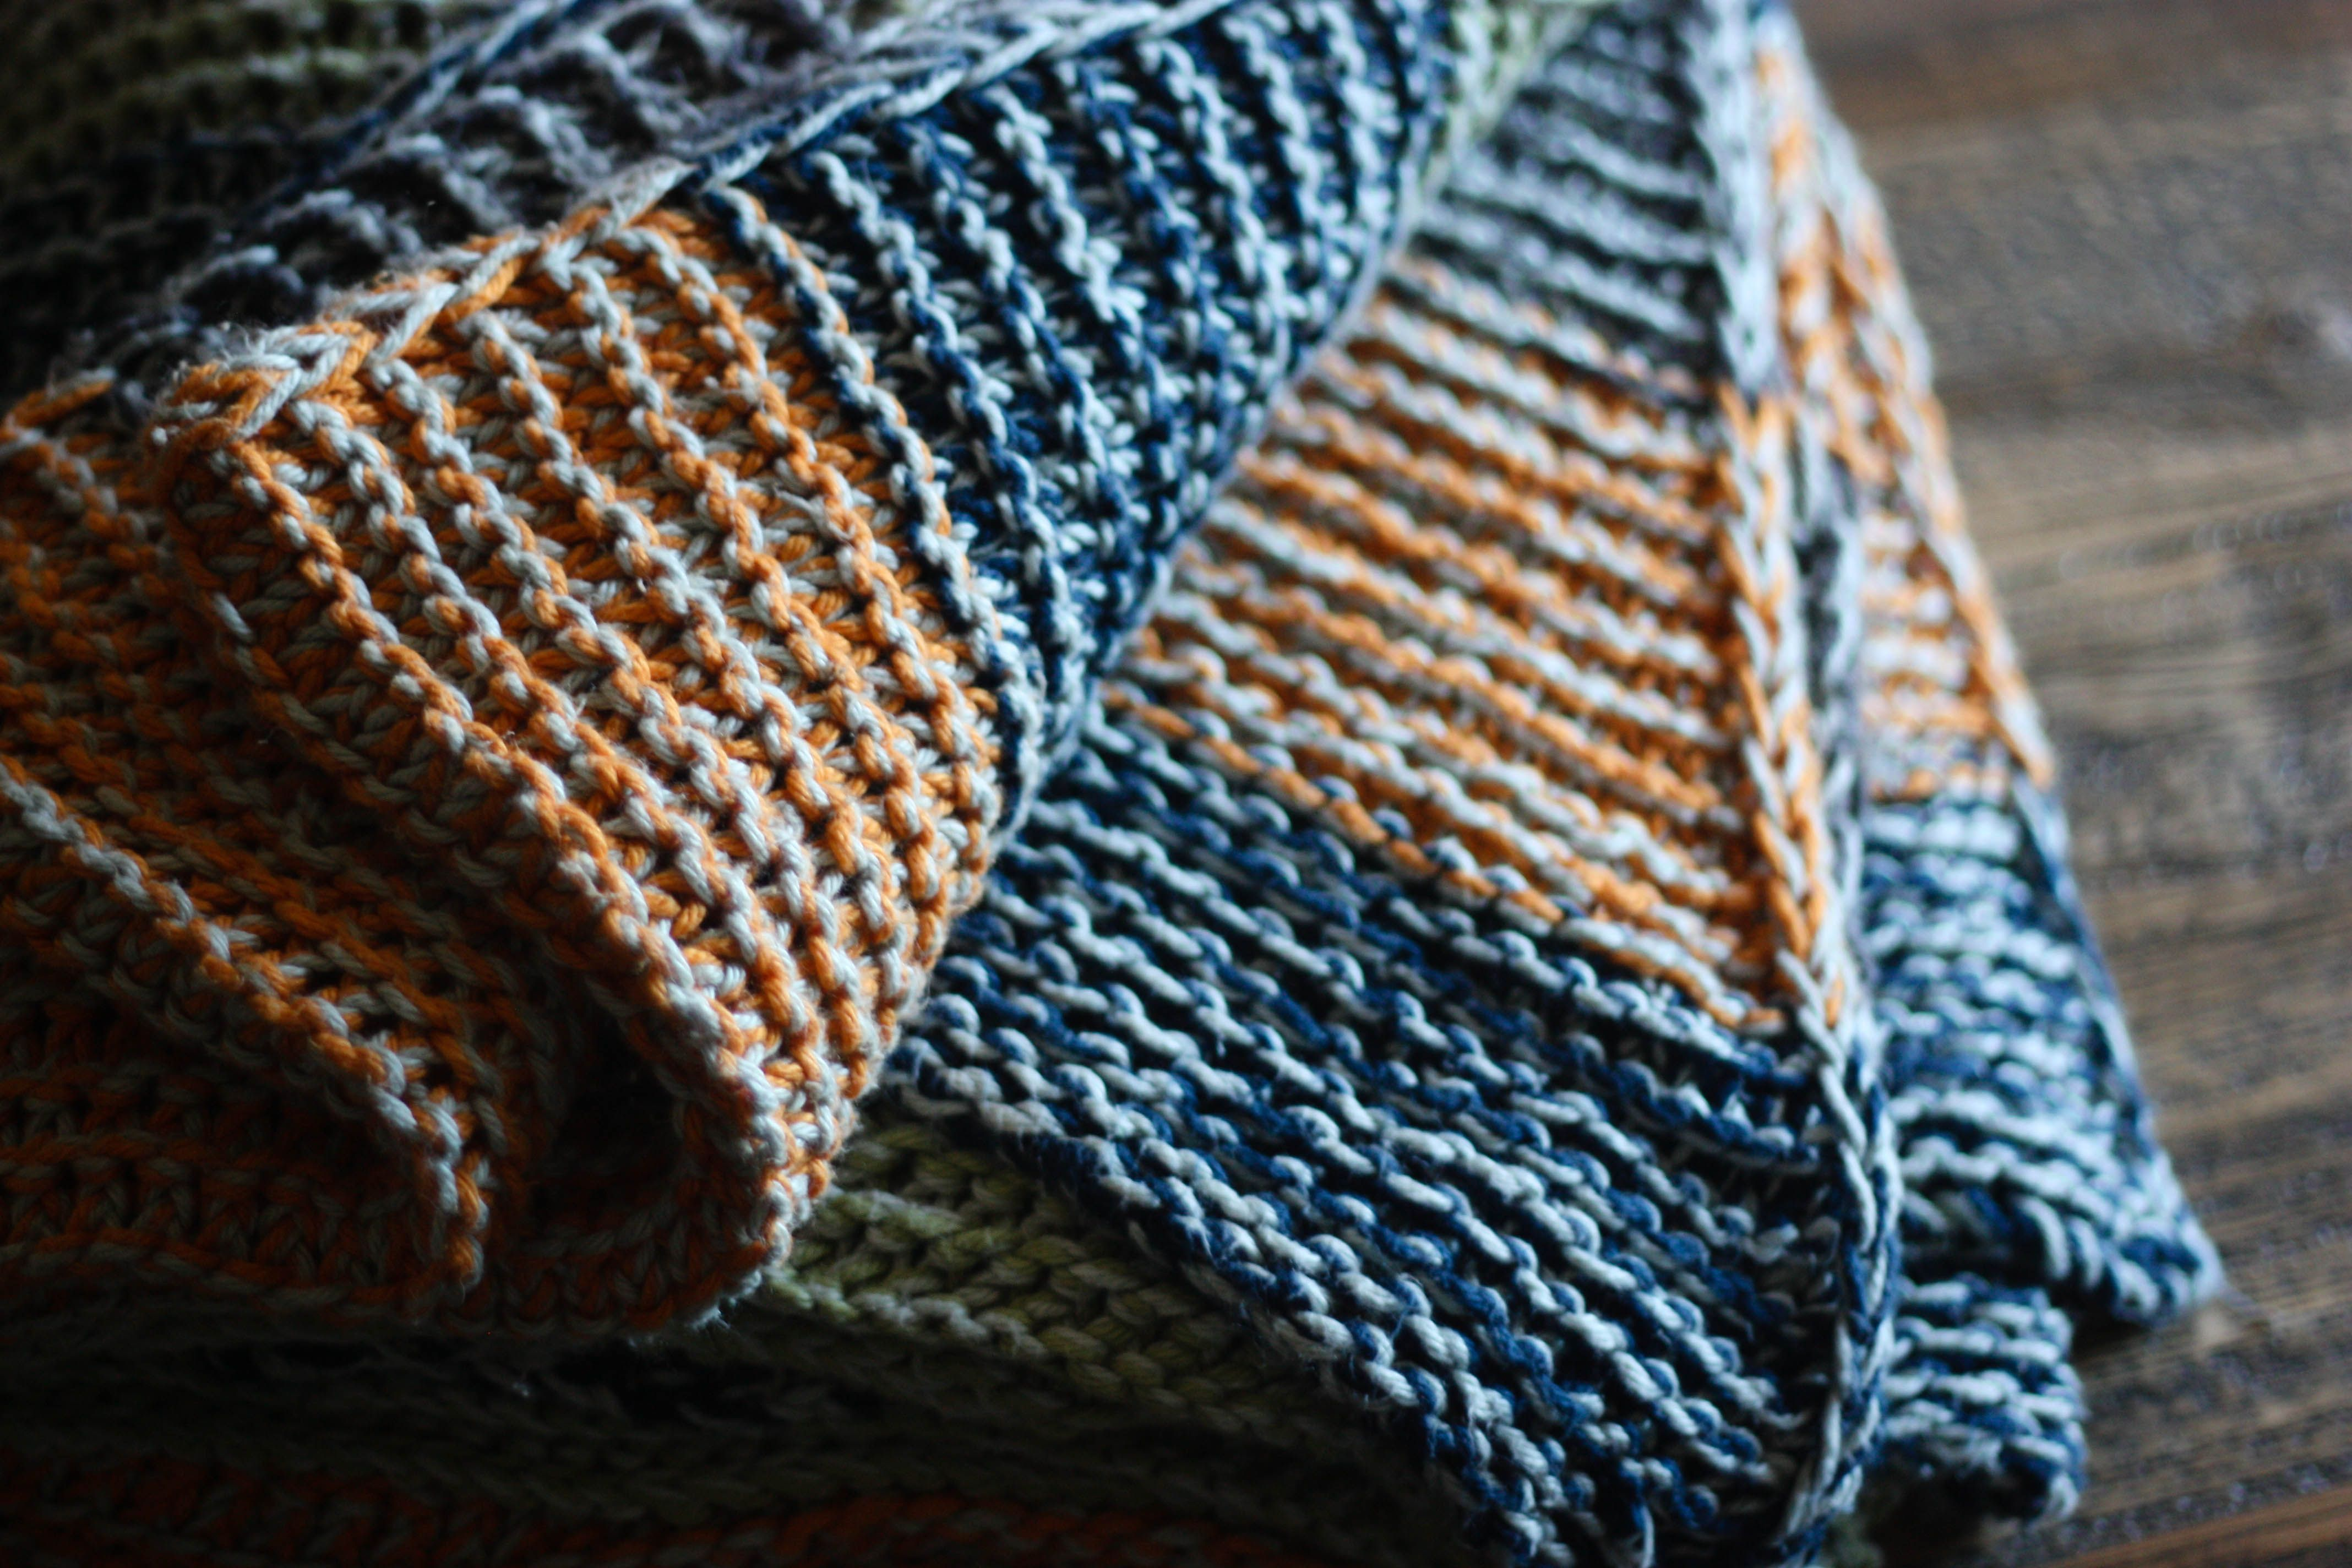 Knitting A Blanket With Circular Needles : Yard of yarn worsted weight skeins silver